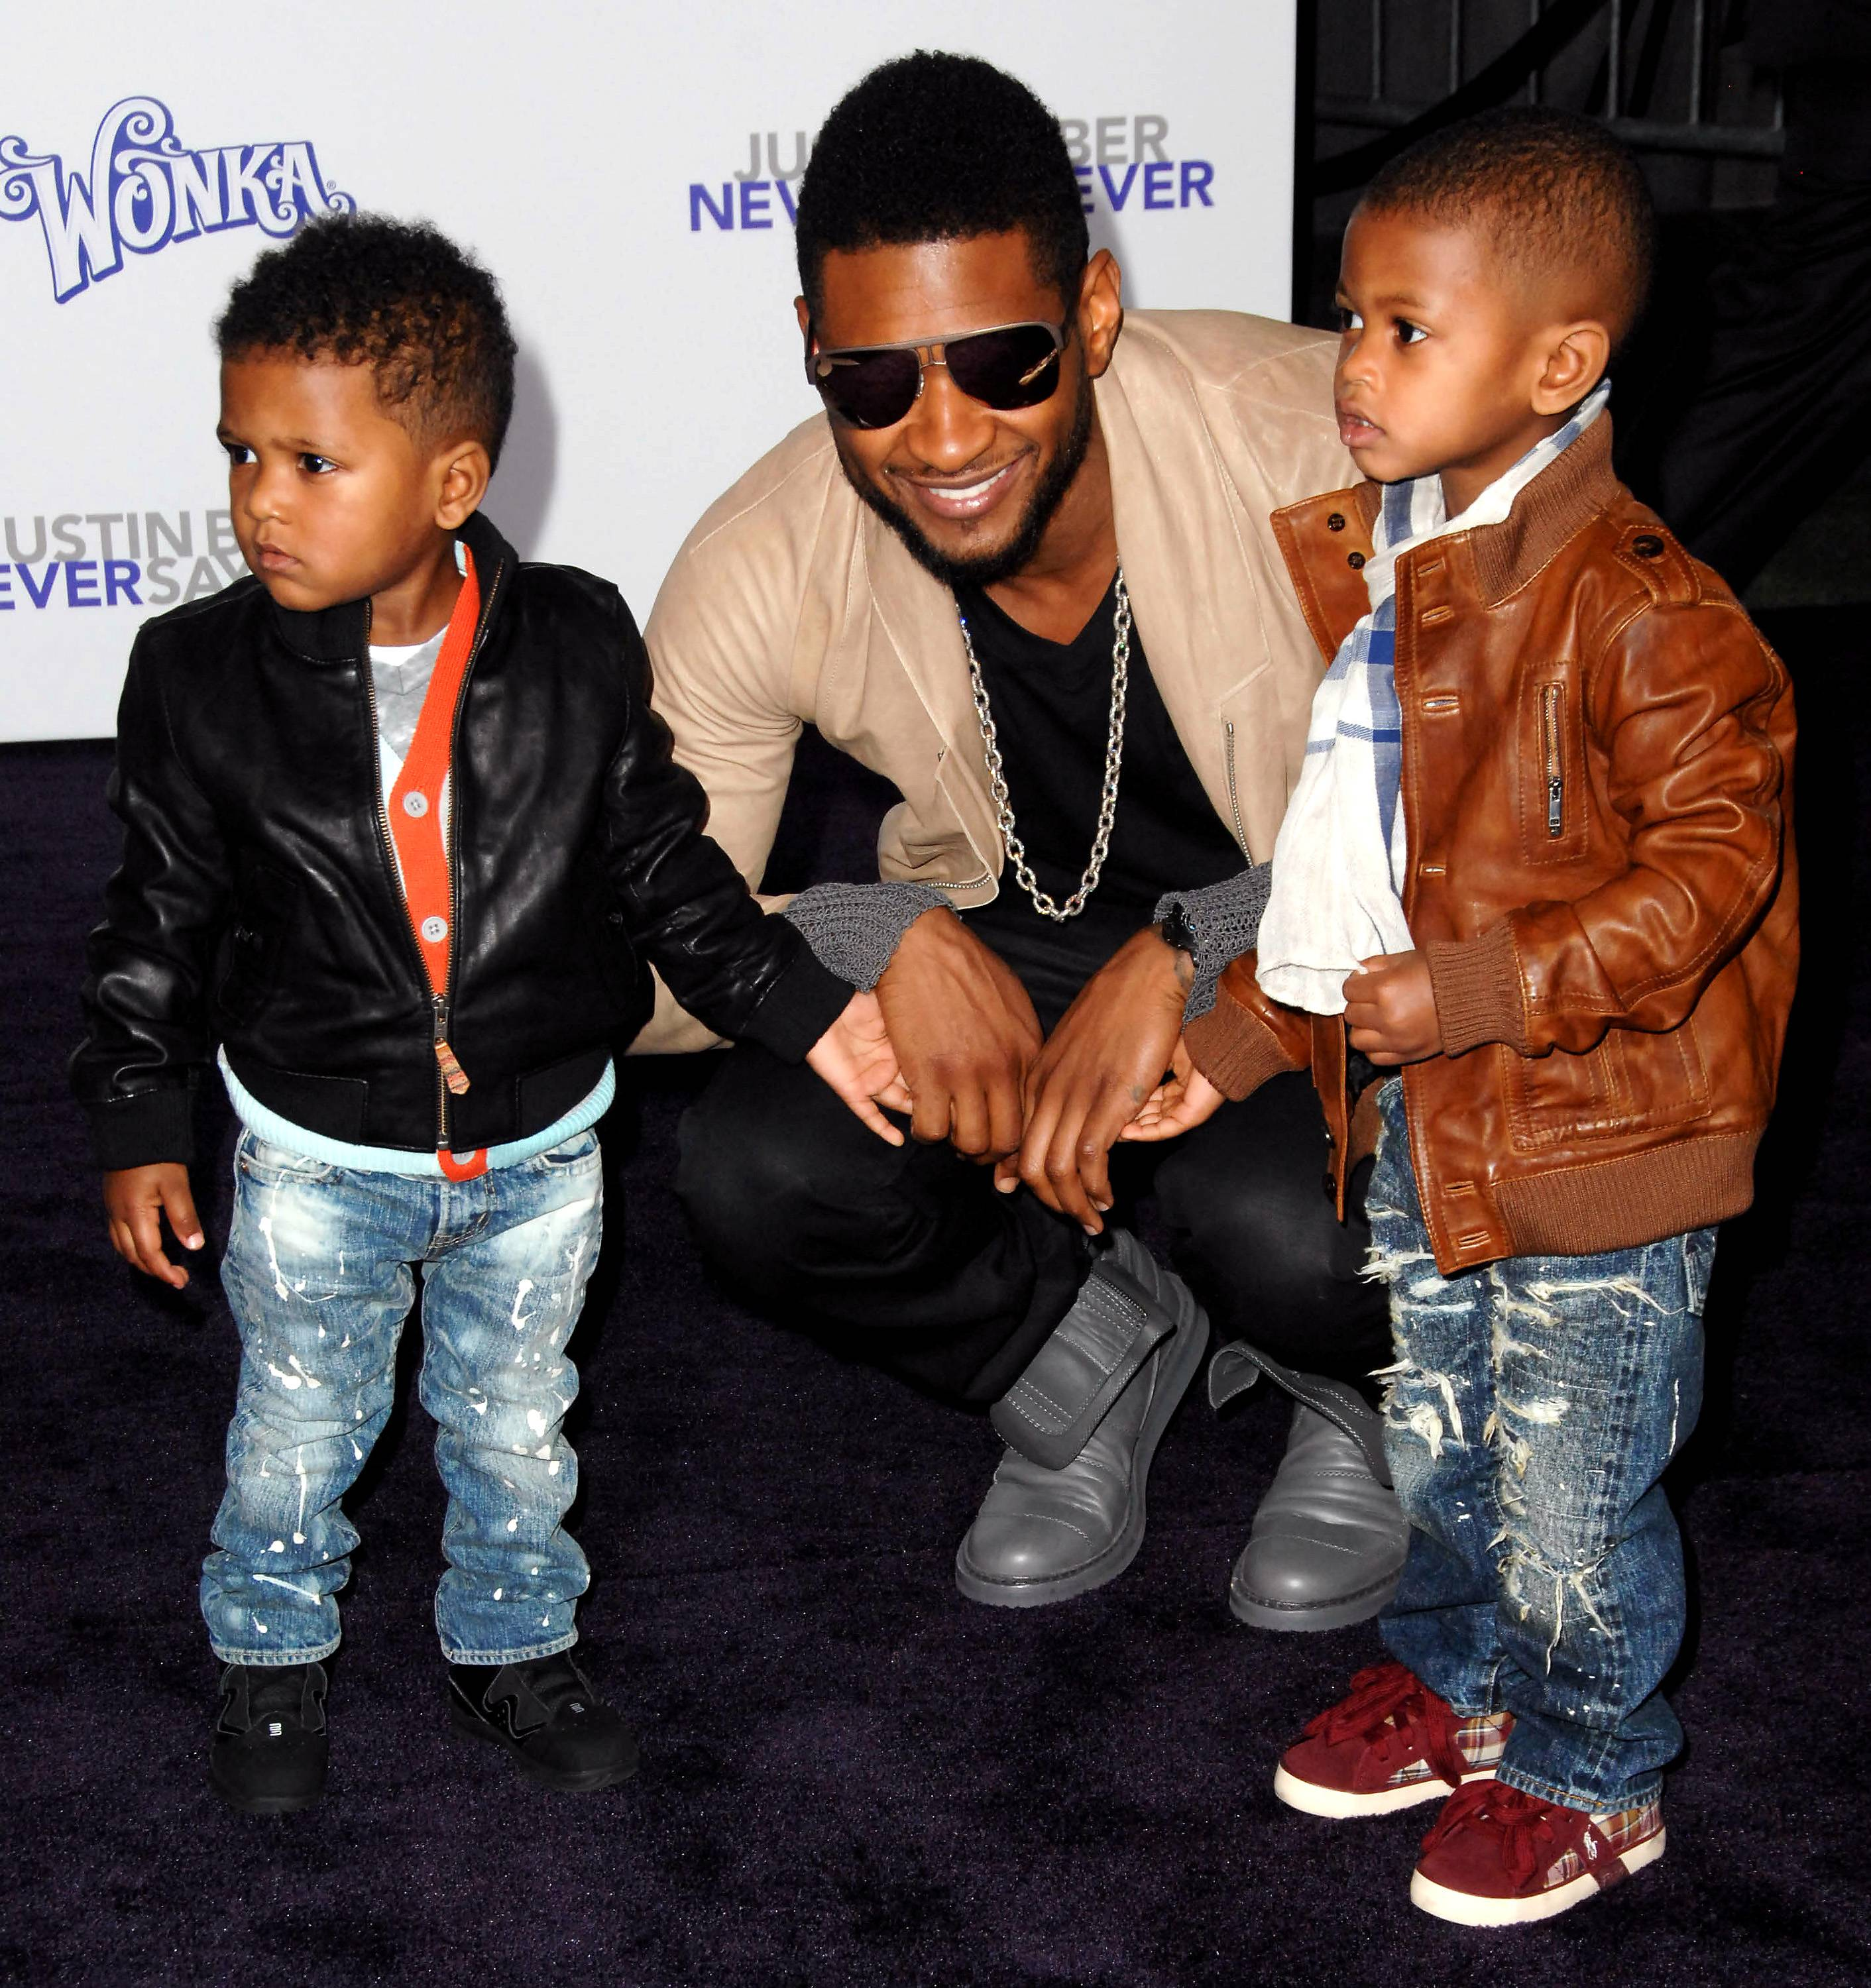 """Usher discusses the joys of parentinghis two sons, Usher V and Naviyd - """"They make we want to get up and live, you know. I have a purpose that is greater than just, you know, amassing wealth and being recognized, you know. This is, this is real, real life now.""""(Photo: Albert L. Ortega/PictureGroup)"""